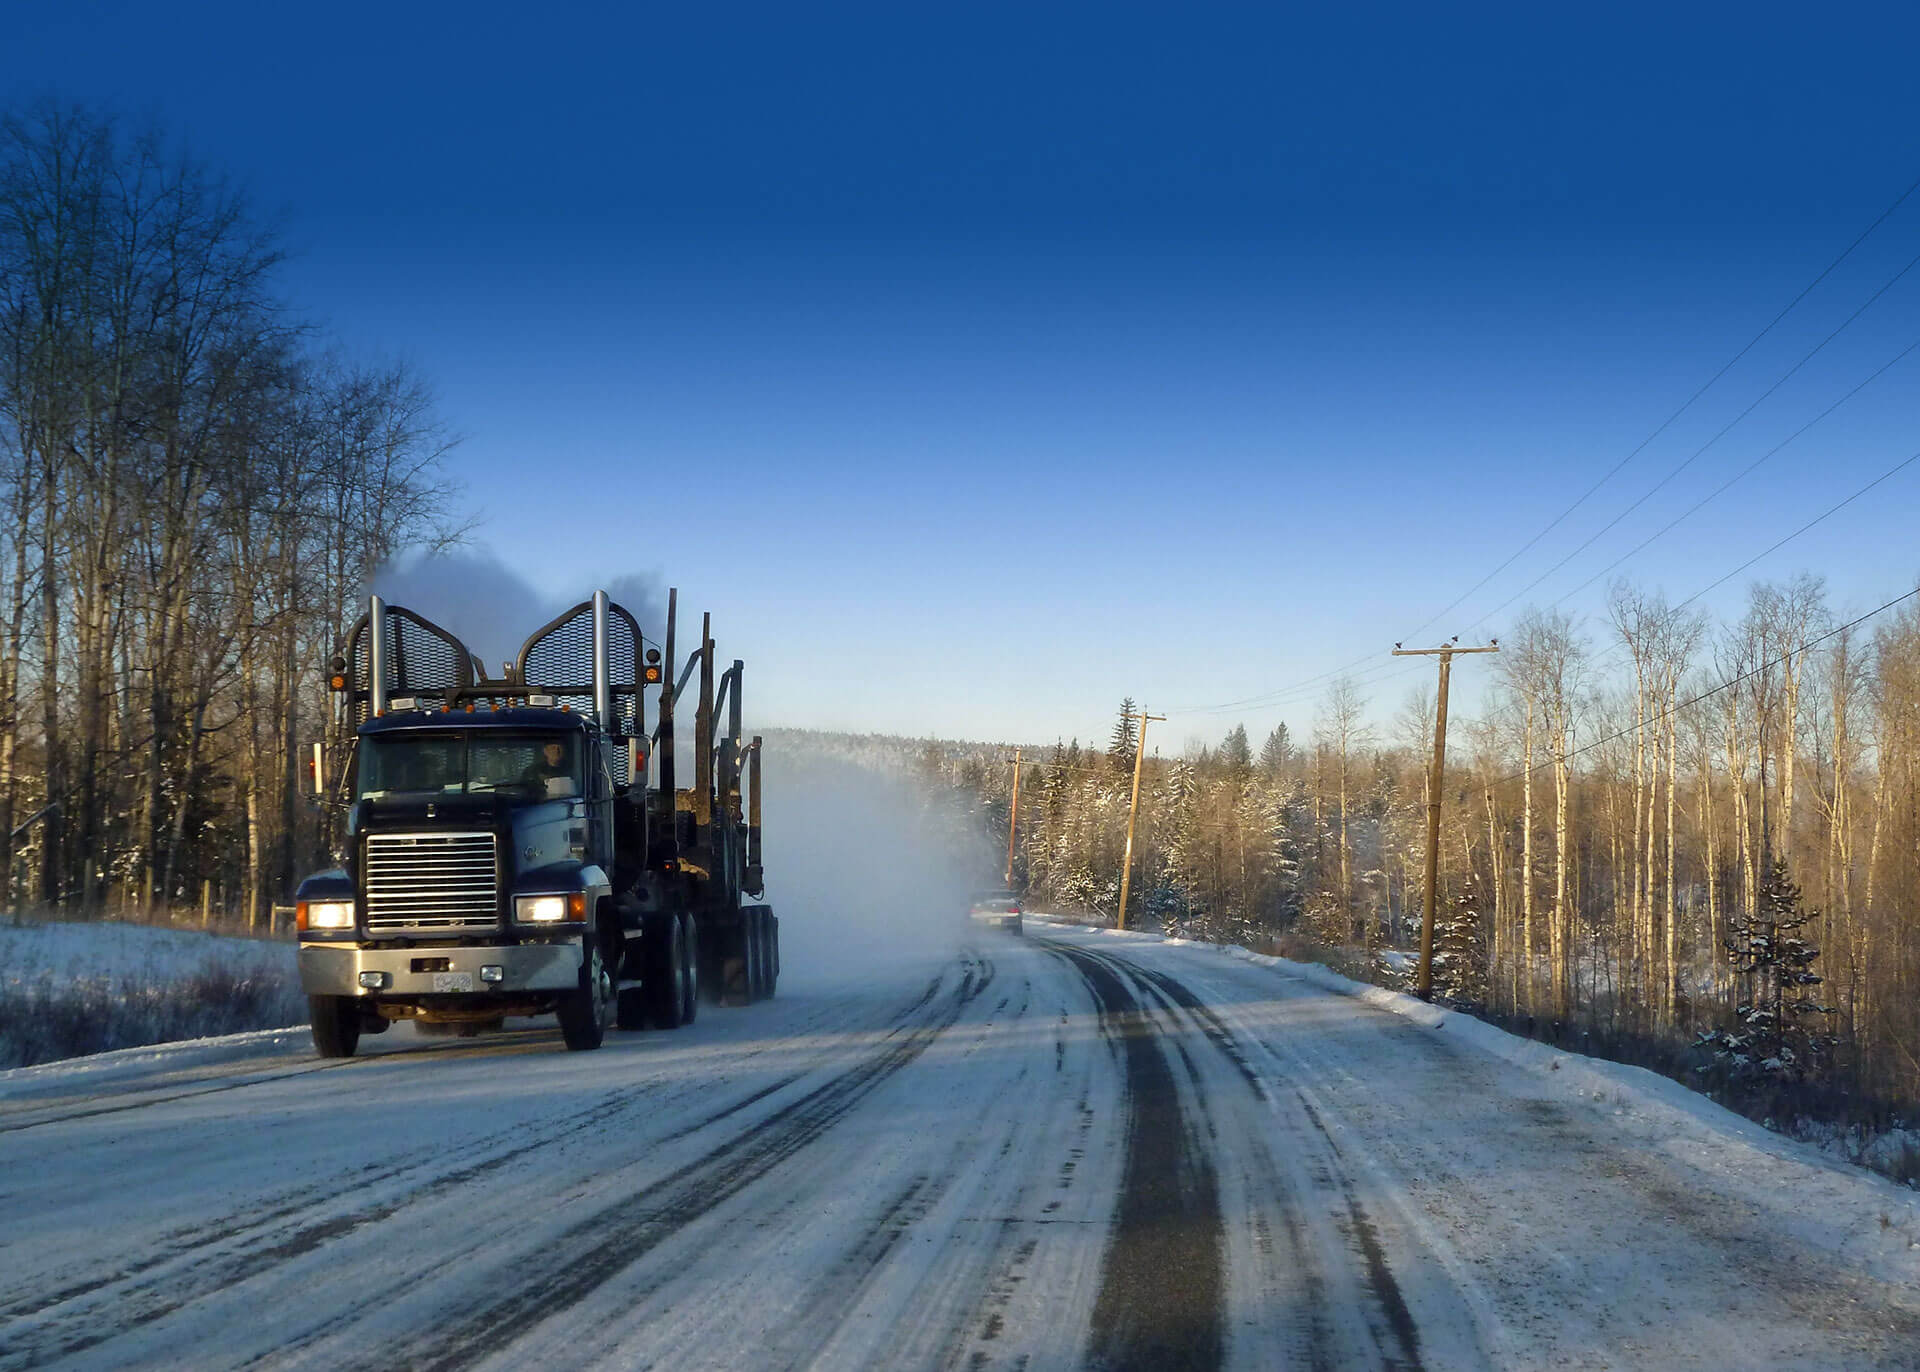 Truck on Winter Road